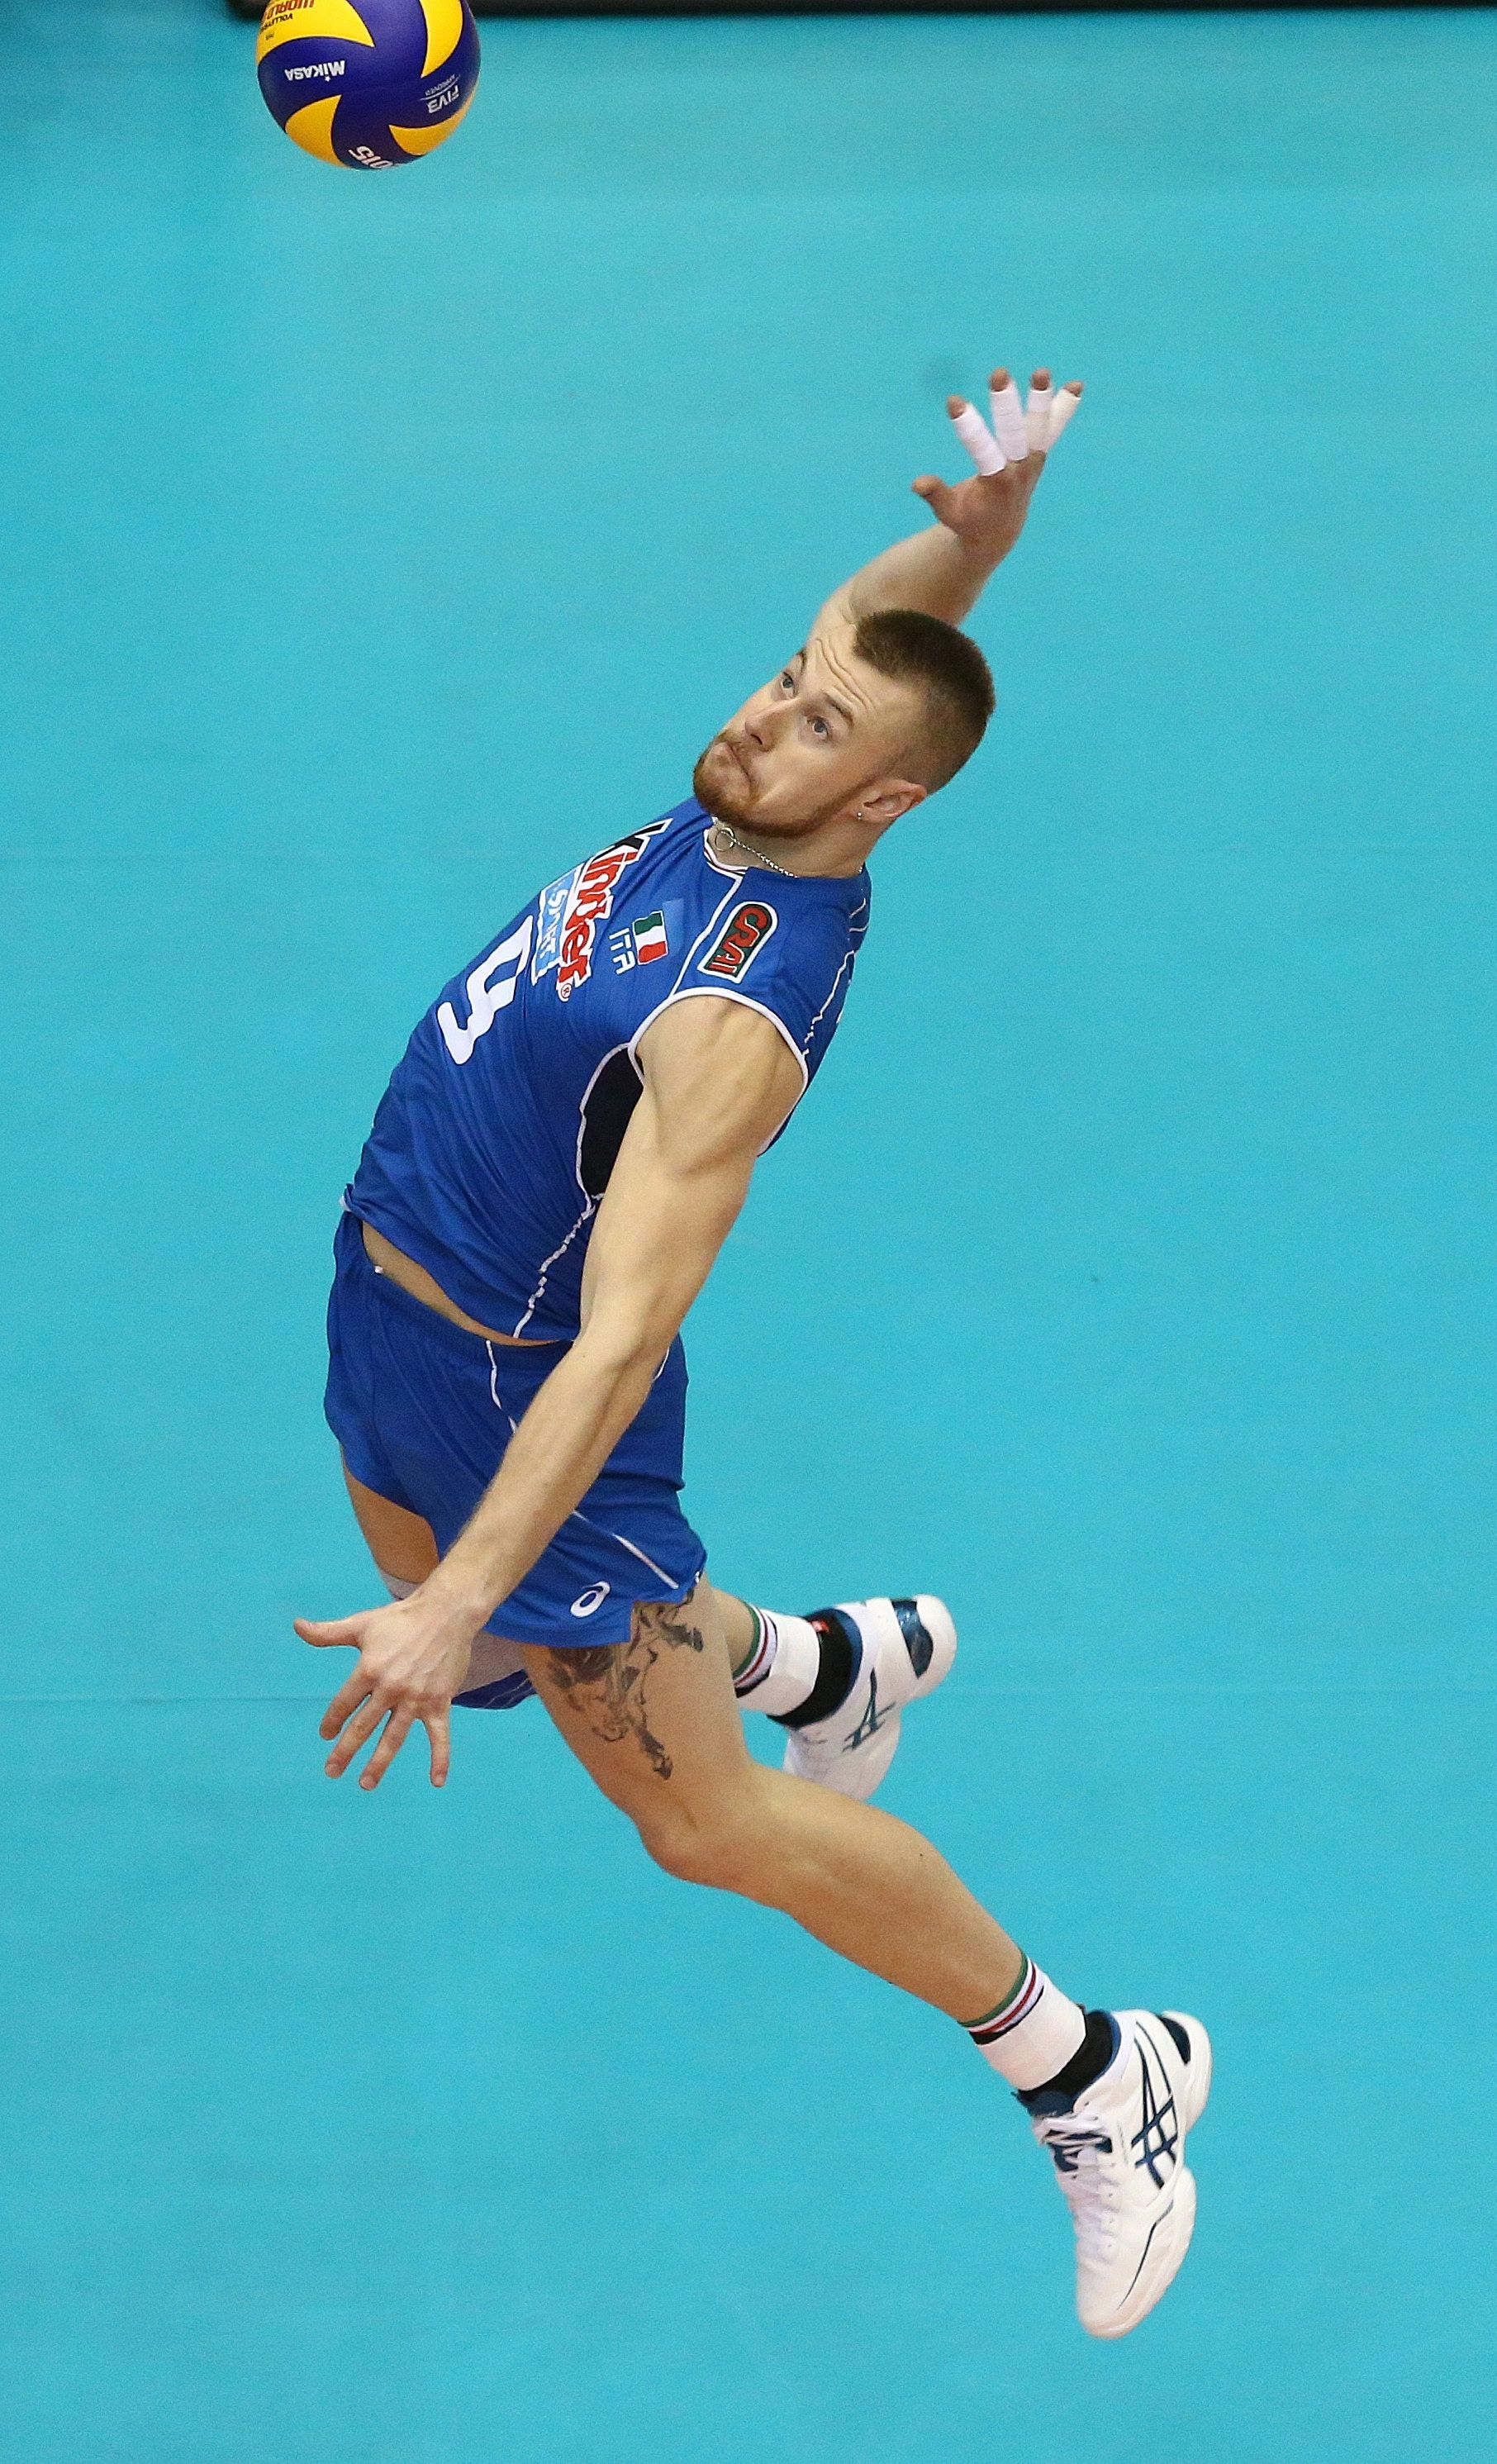 Beautiful Shot Of Ivan Zaytsev Spiking The Ball Mens Volleyball Boxing Workout Sports Balls